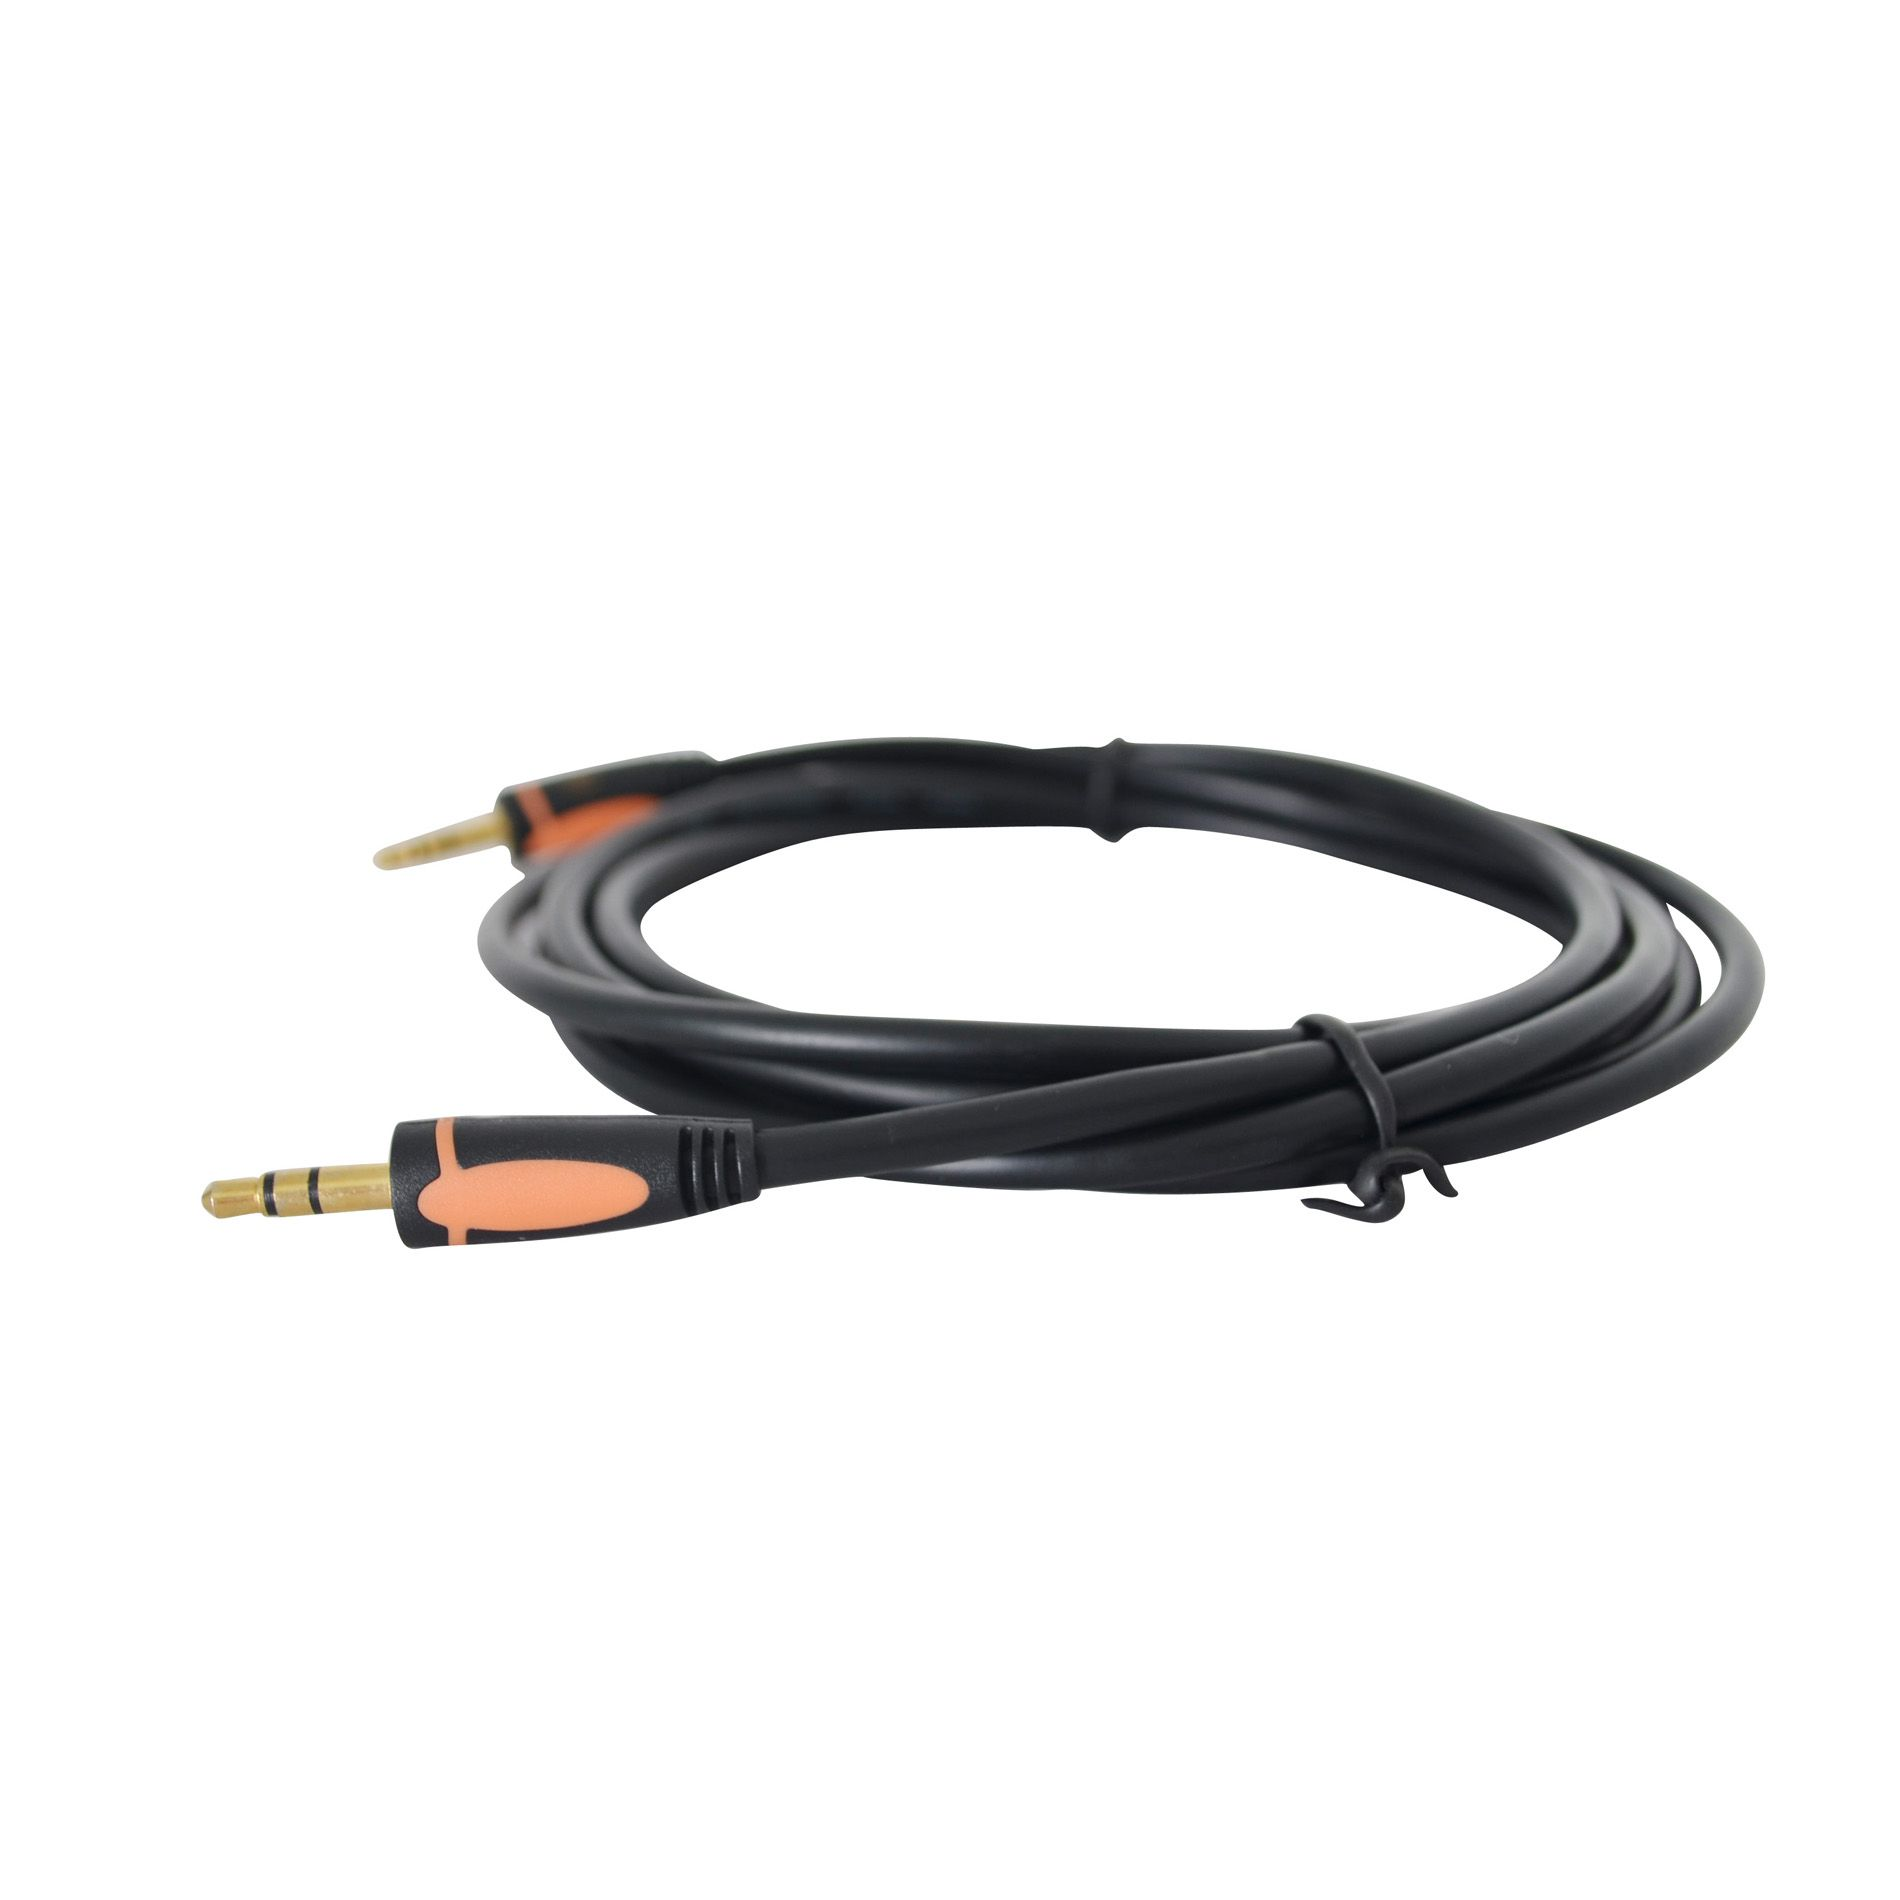 Alphaline™ 6' 3.5mm Audio Cable